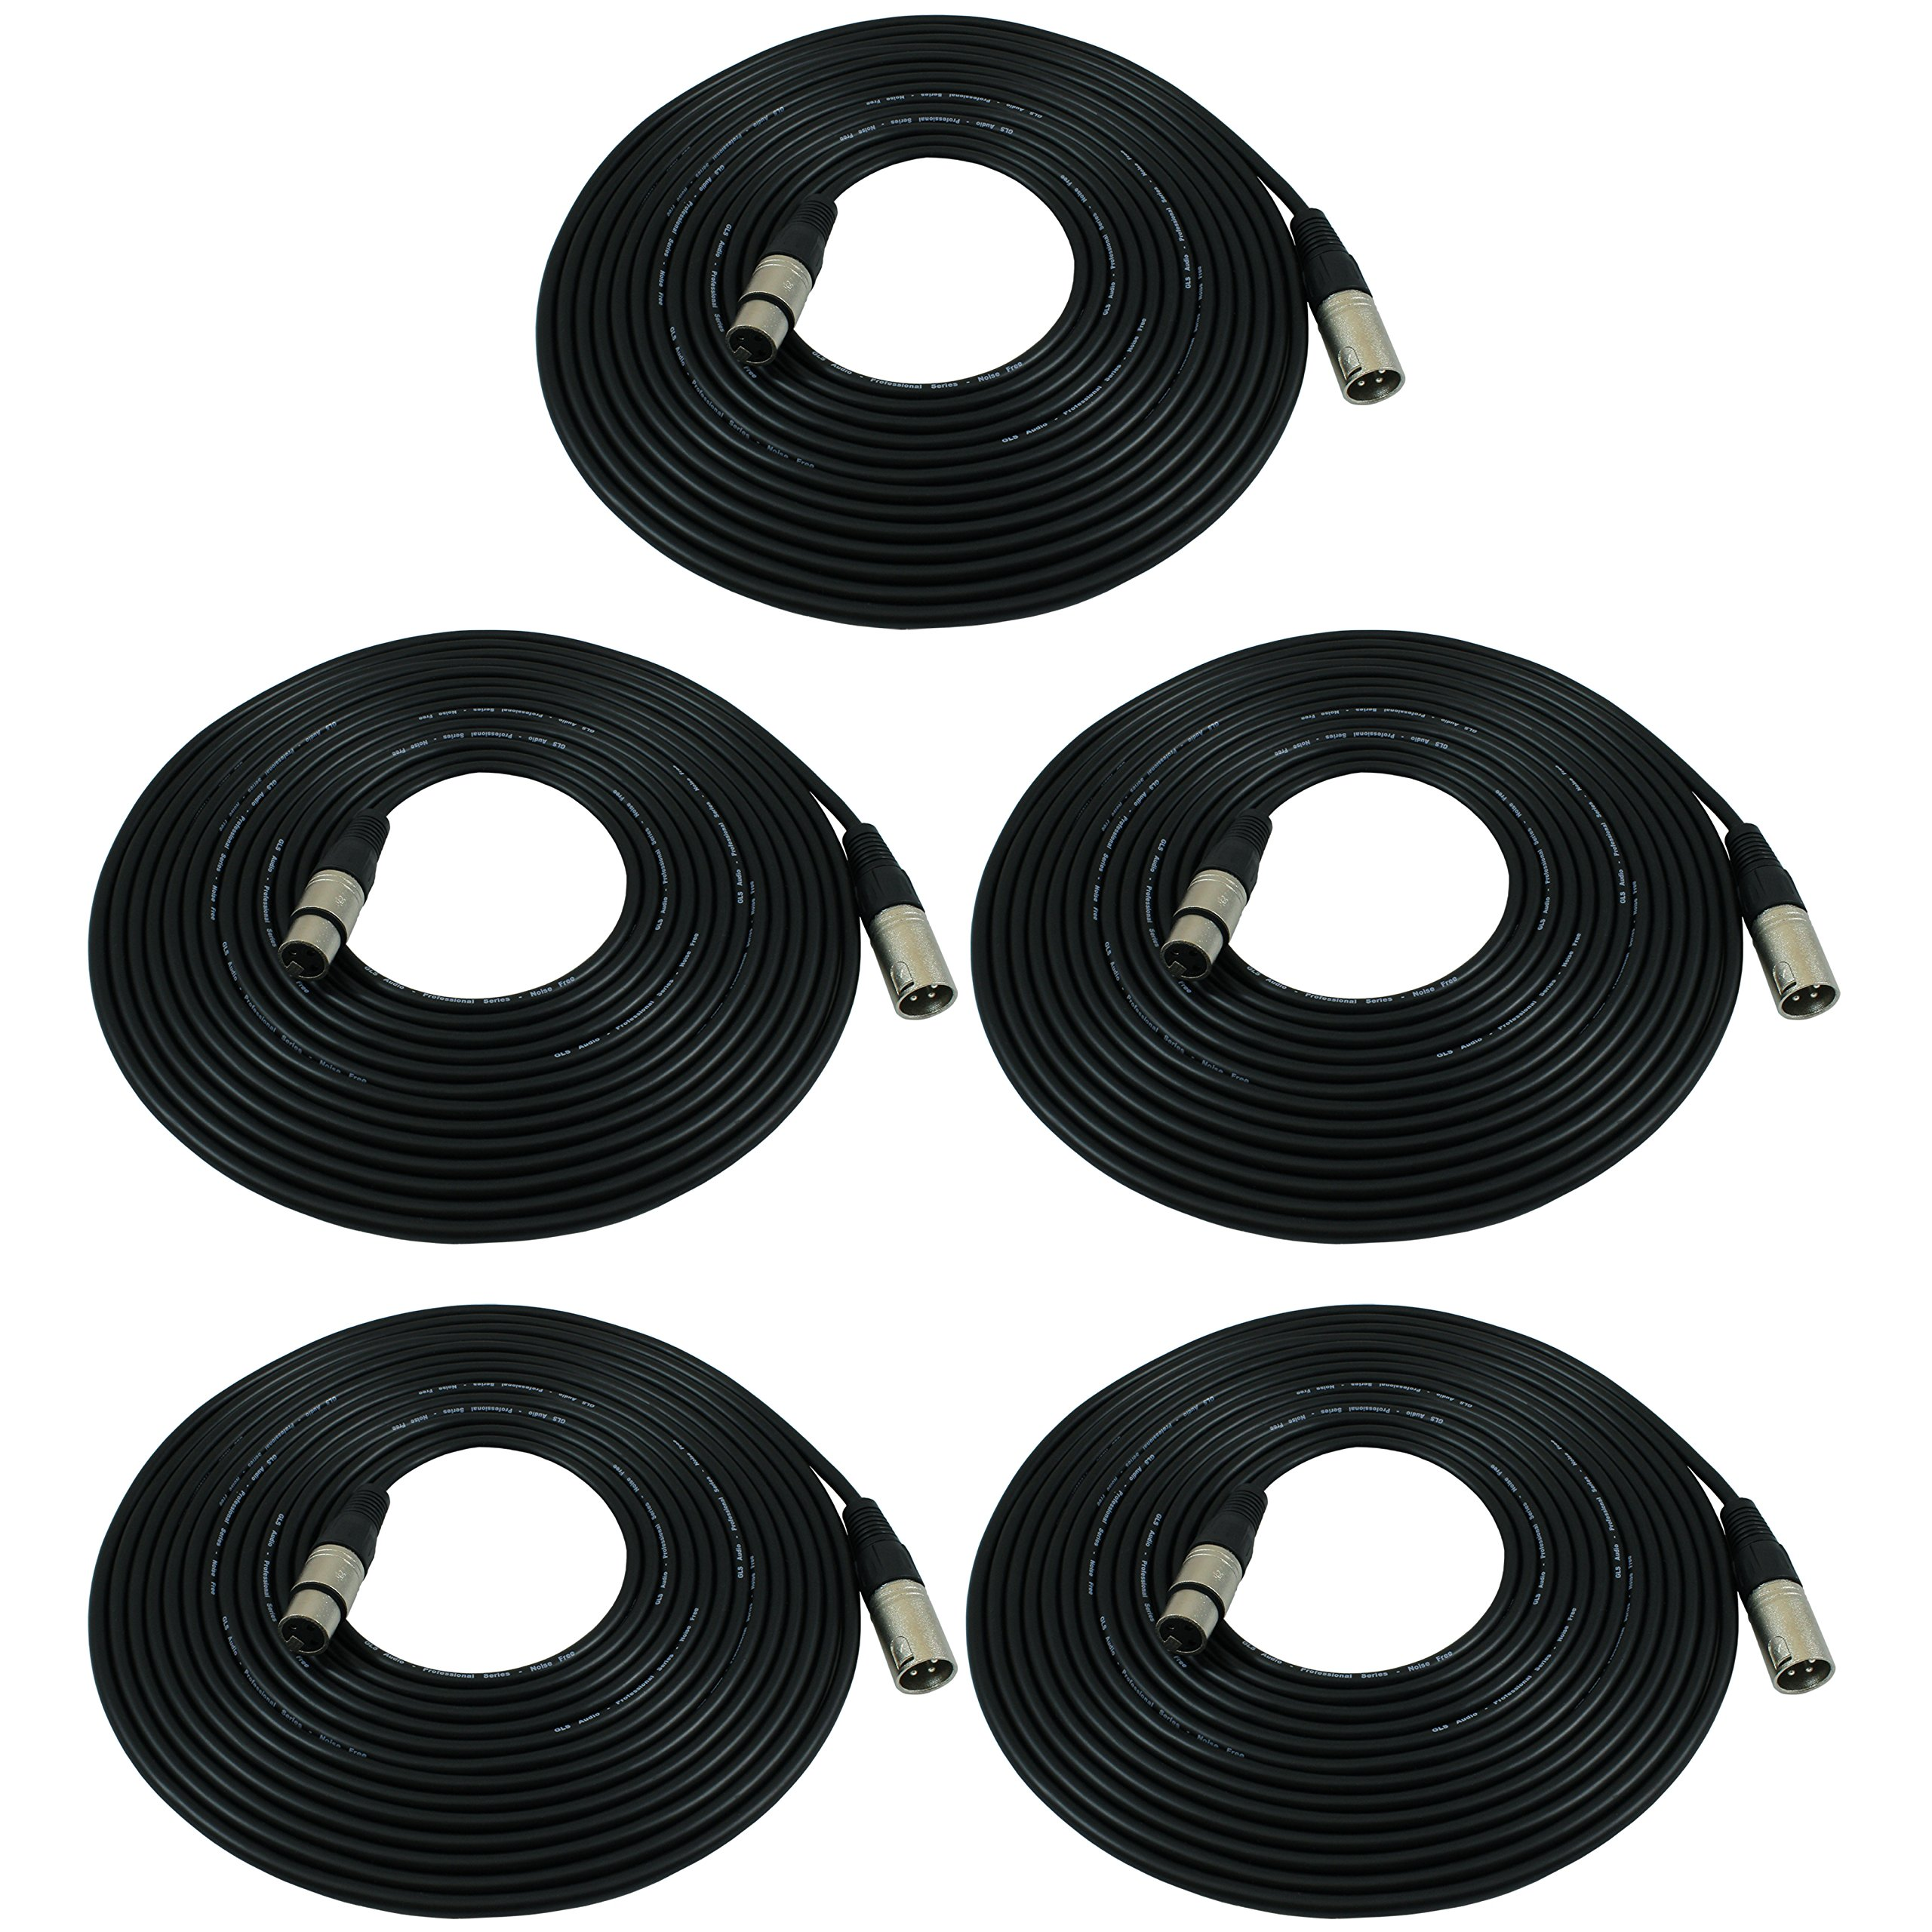 GLS Audio 25ft Mic Cable Patch Cords - XLR Male to XLR Female Black Microphone Cables - 25' Balanced Mike Snake Cord - 5 PACK by GLS Audio (Image #1)